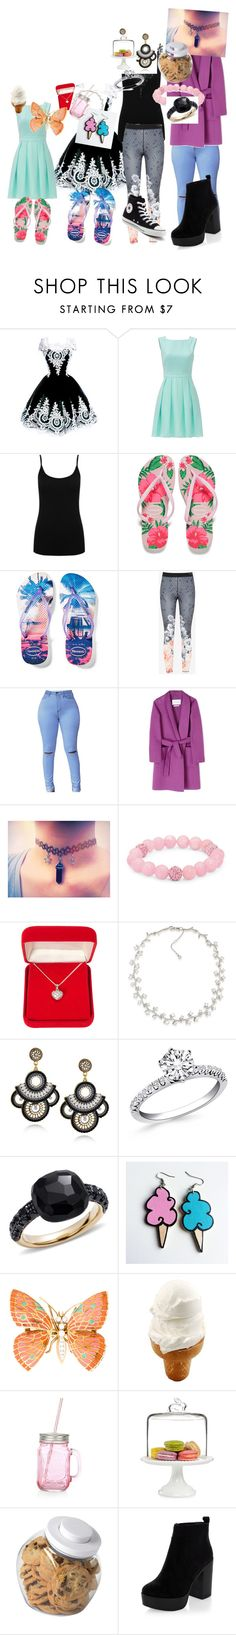 """Made by my 6 year old cousin"" by dj1direction ❤ liked on Polyvore featuring Kate Spade, M&Co, Havaianas, Ted Baker, MaxMara, Palm Beach Jewelry, Alexa Starr, Carolee, Pomellato and Junk Food Clothing"